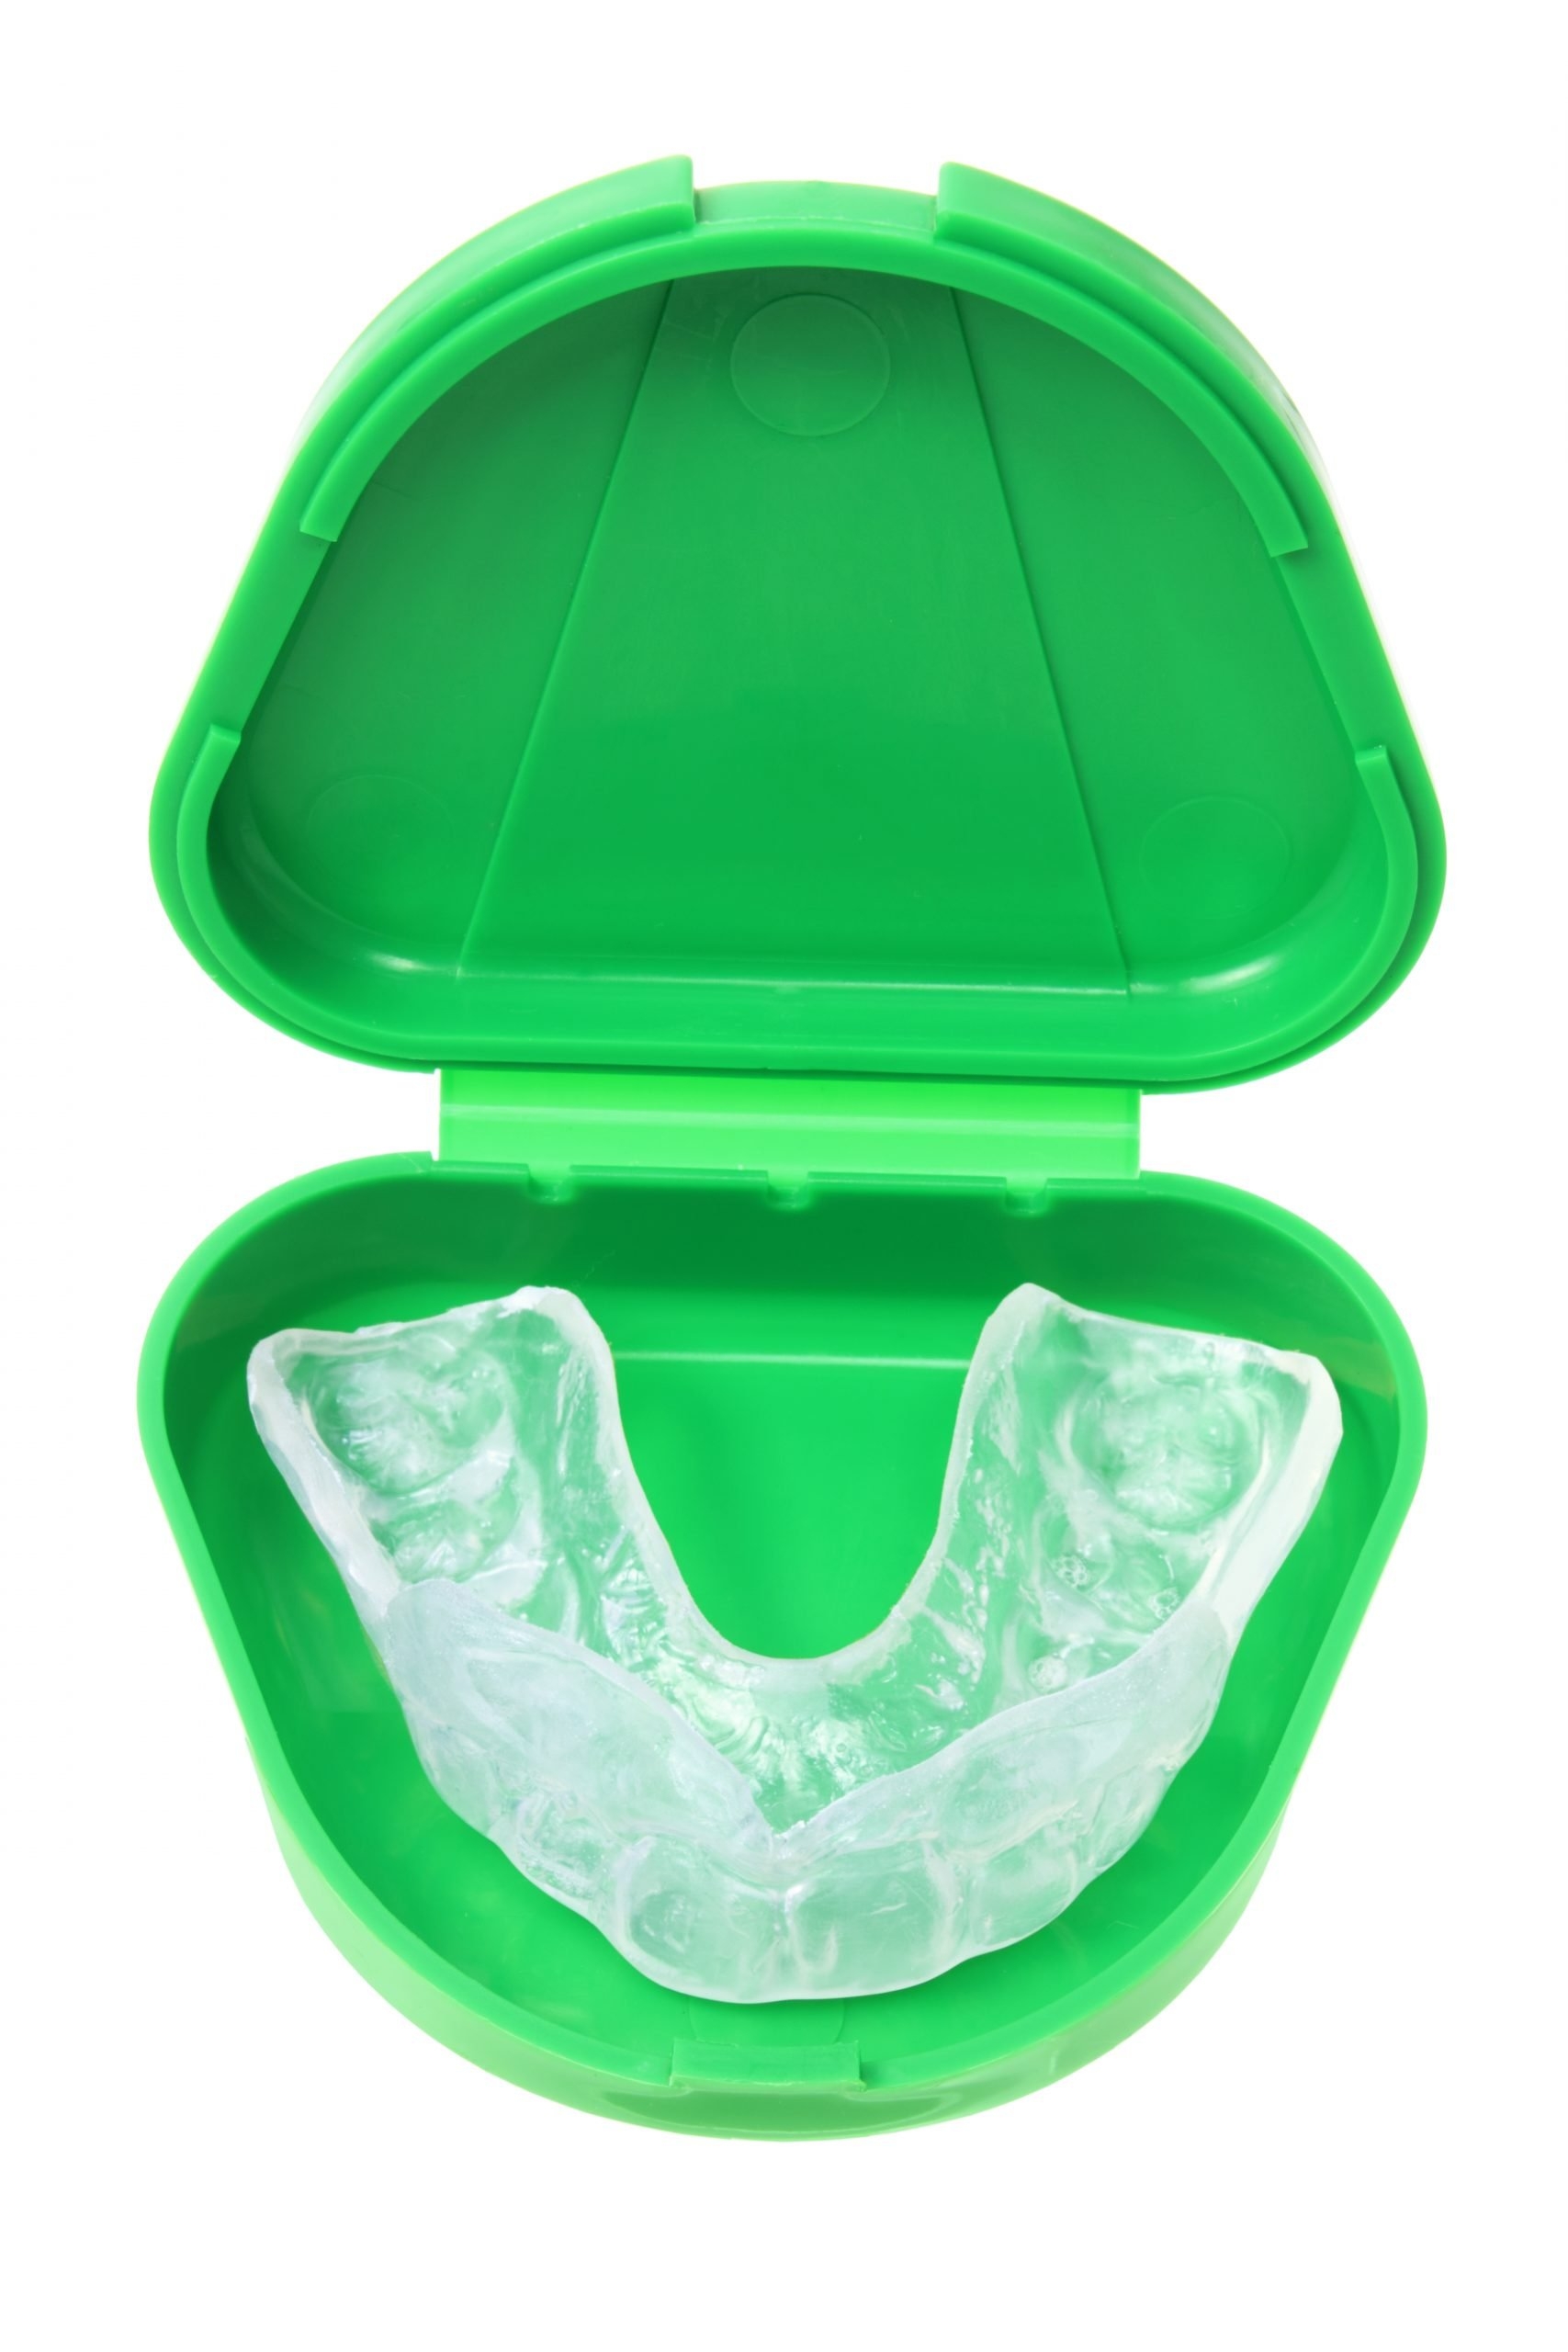 mouthguard in container